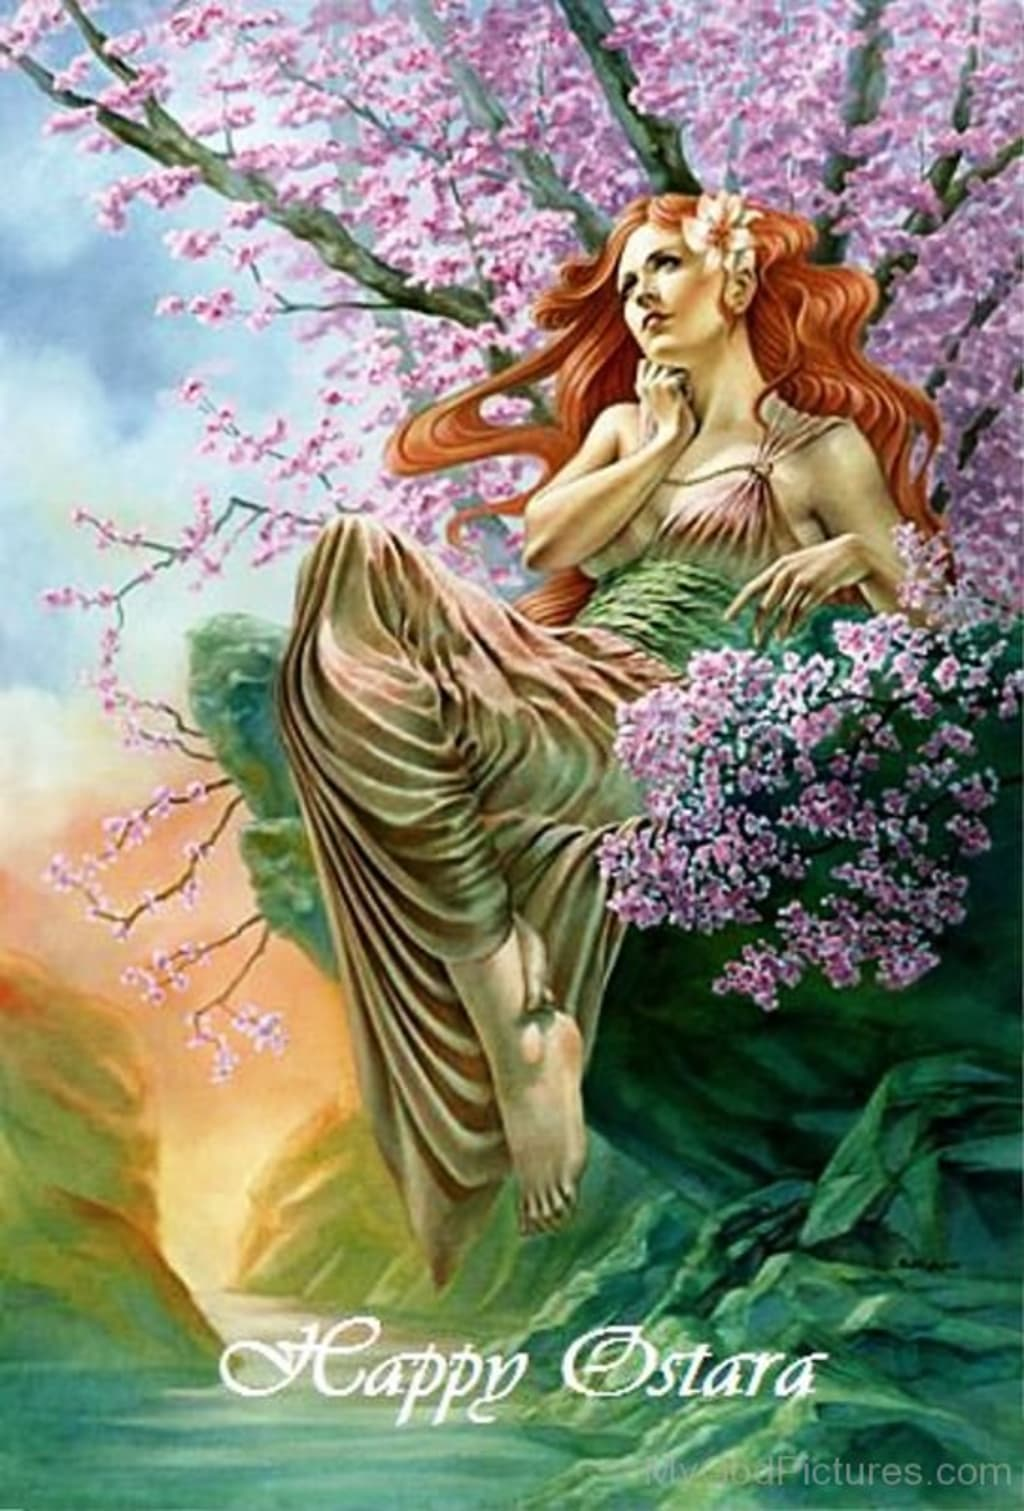 Easter or Eostre